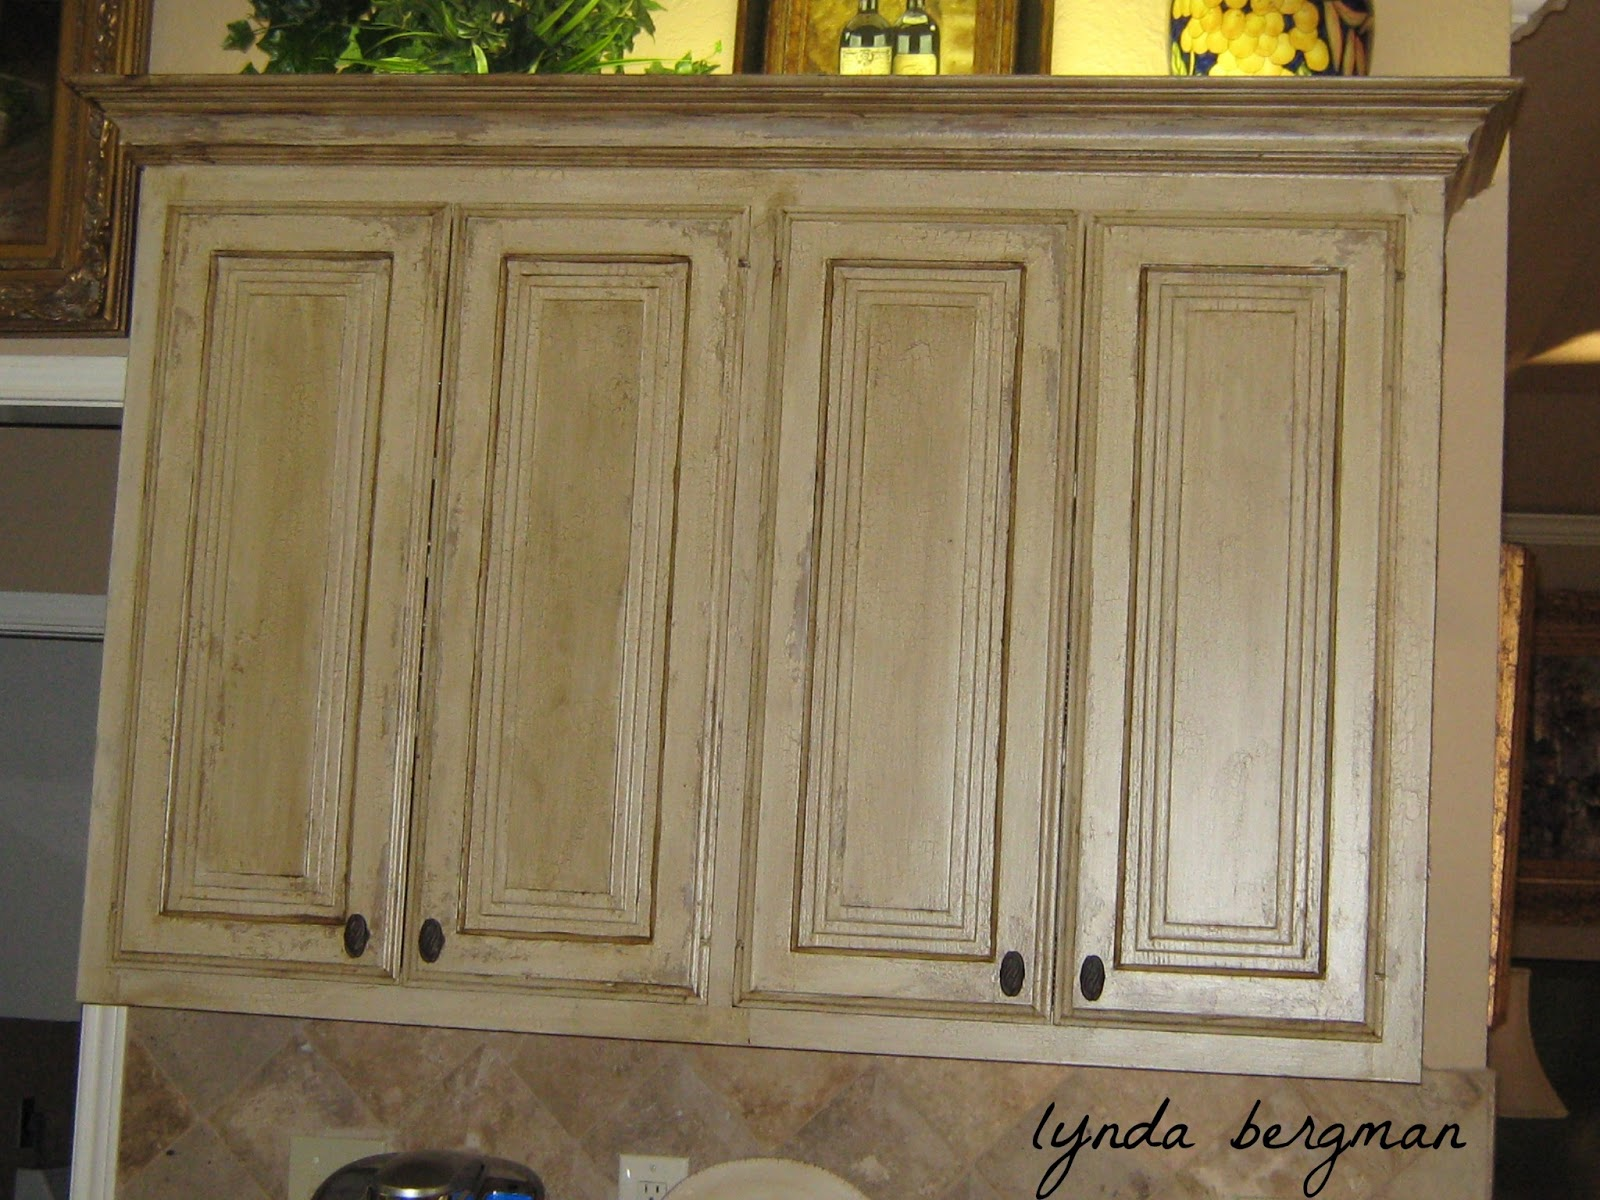 Lynda bergman decorative artisan may 2012 - How to glaze kitchen cabinets that are painted ...